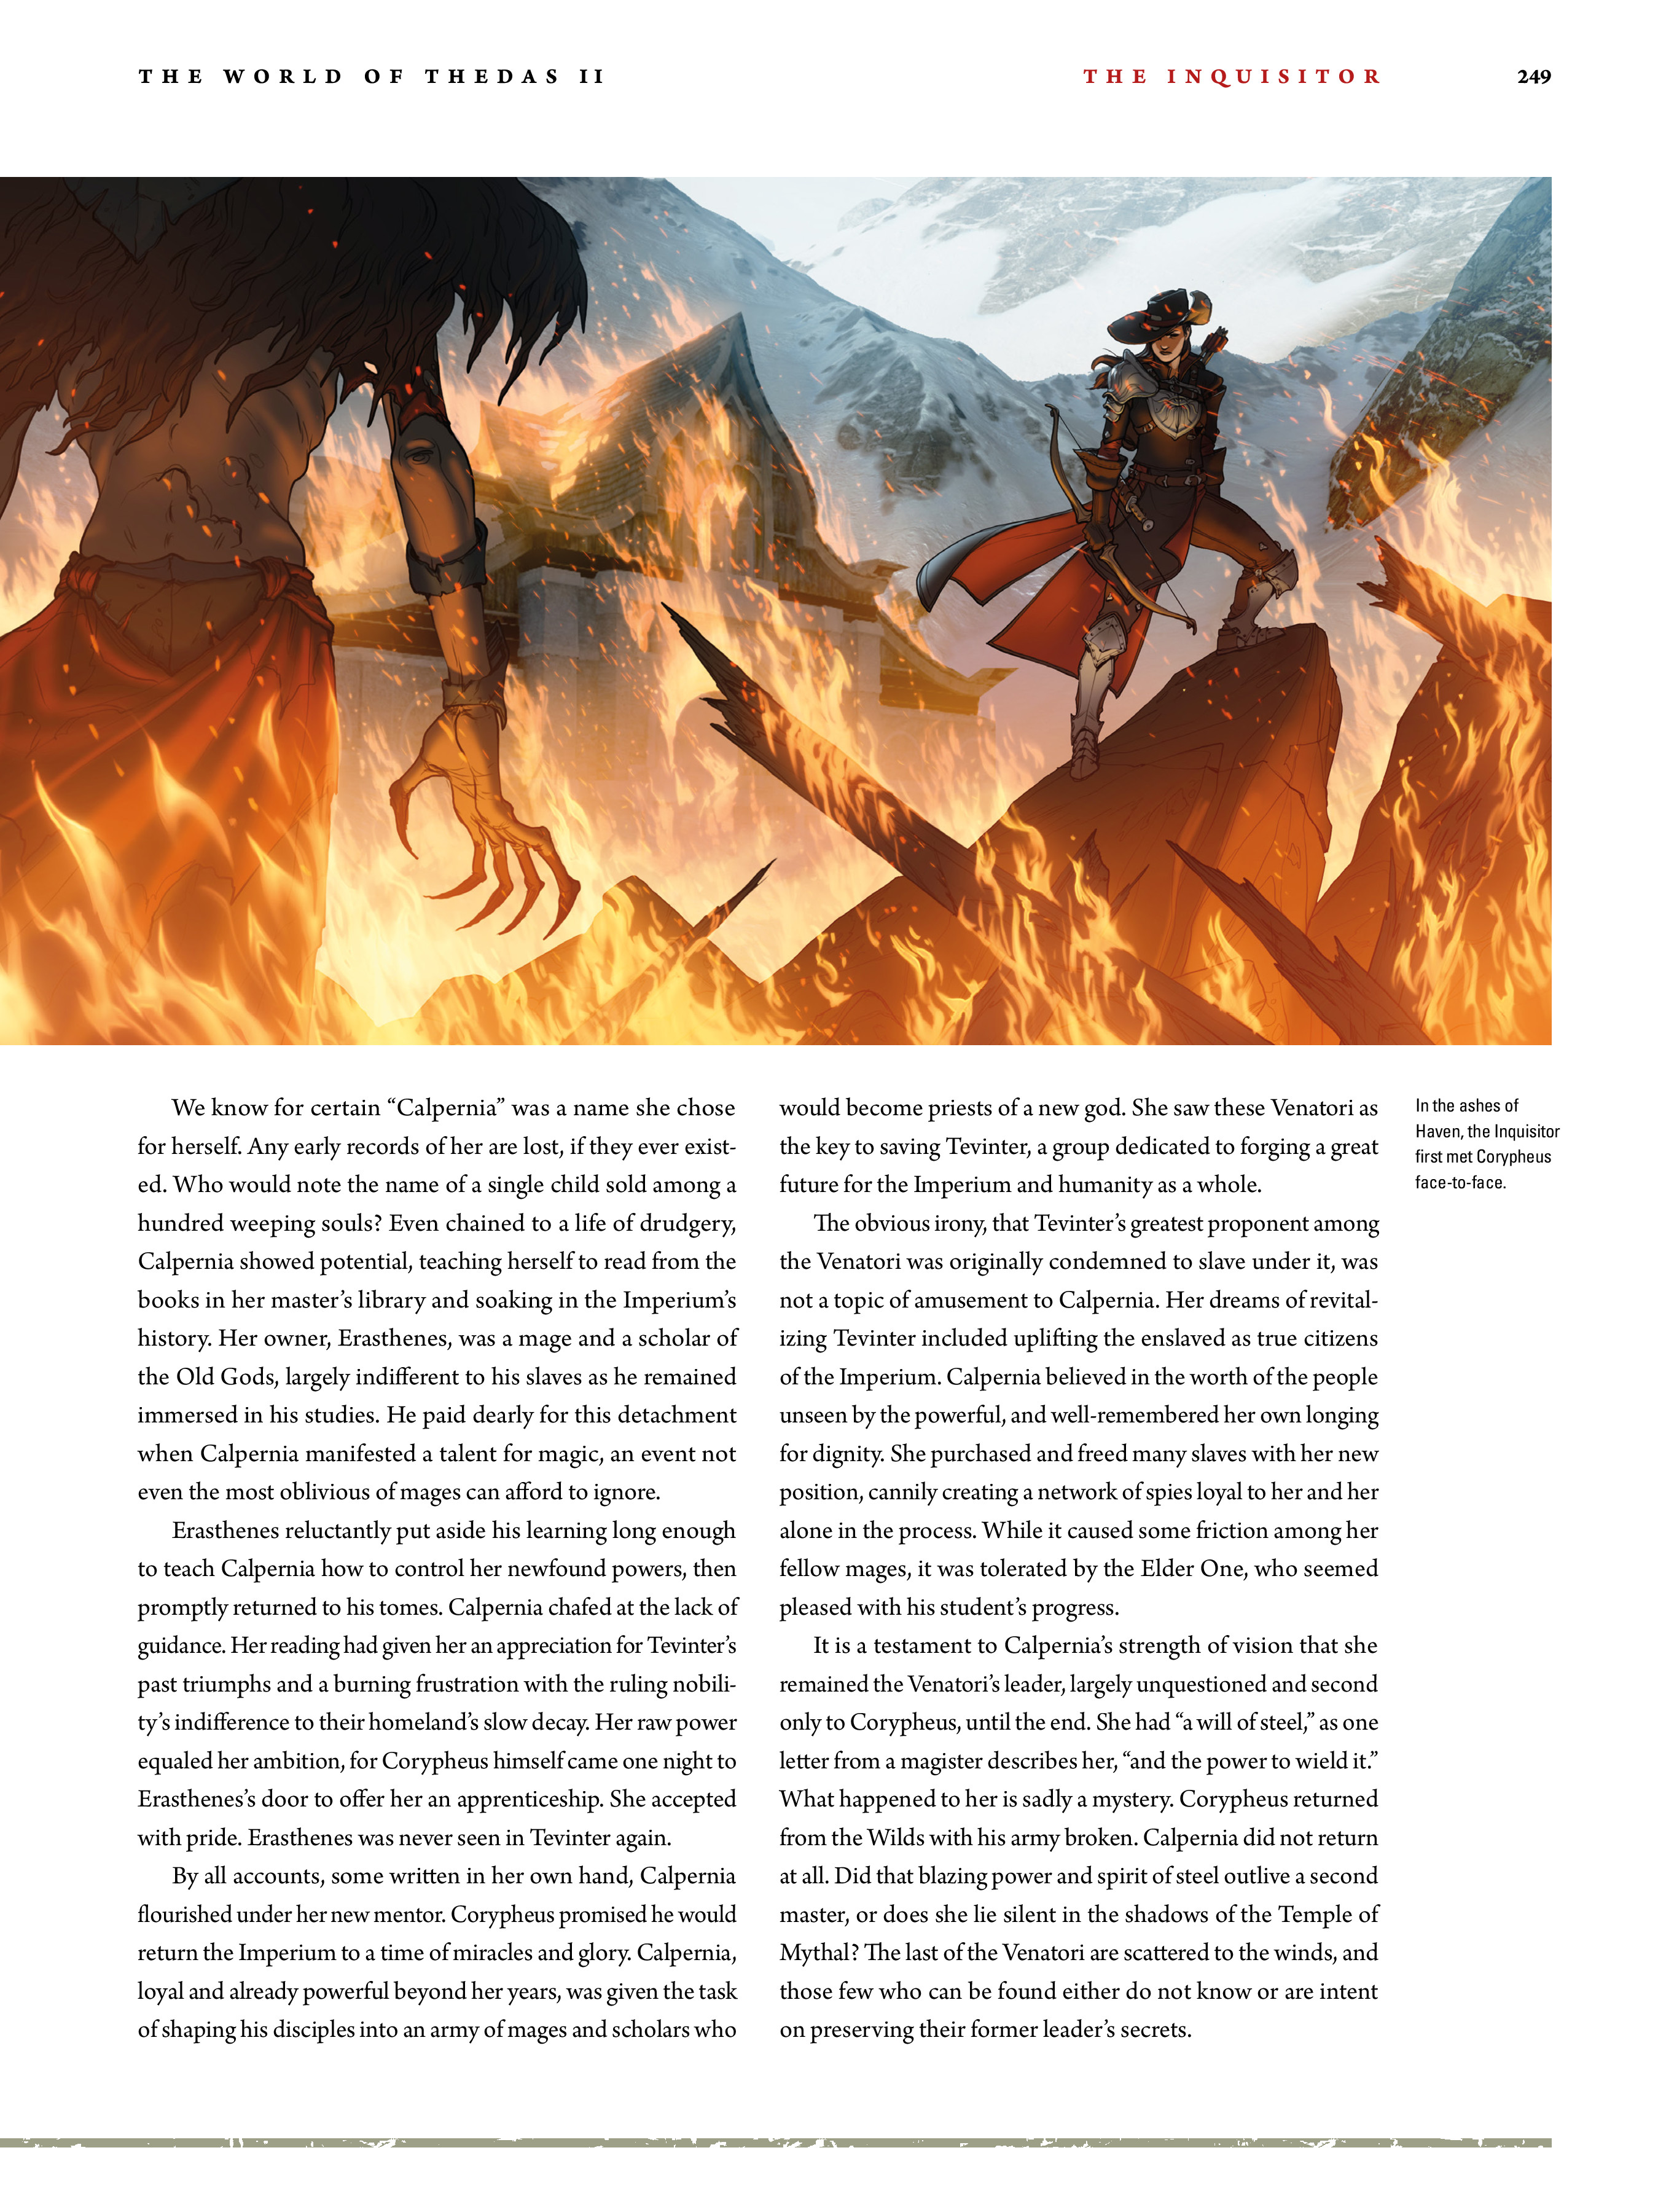 Read online Dragon Age: The World of Thedas comic -  Issue # TPB 2 - 243